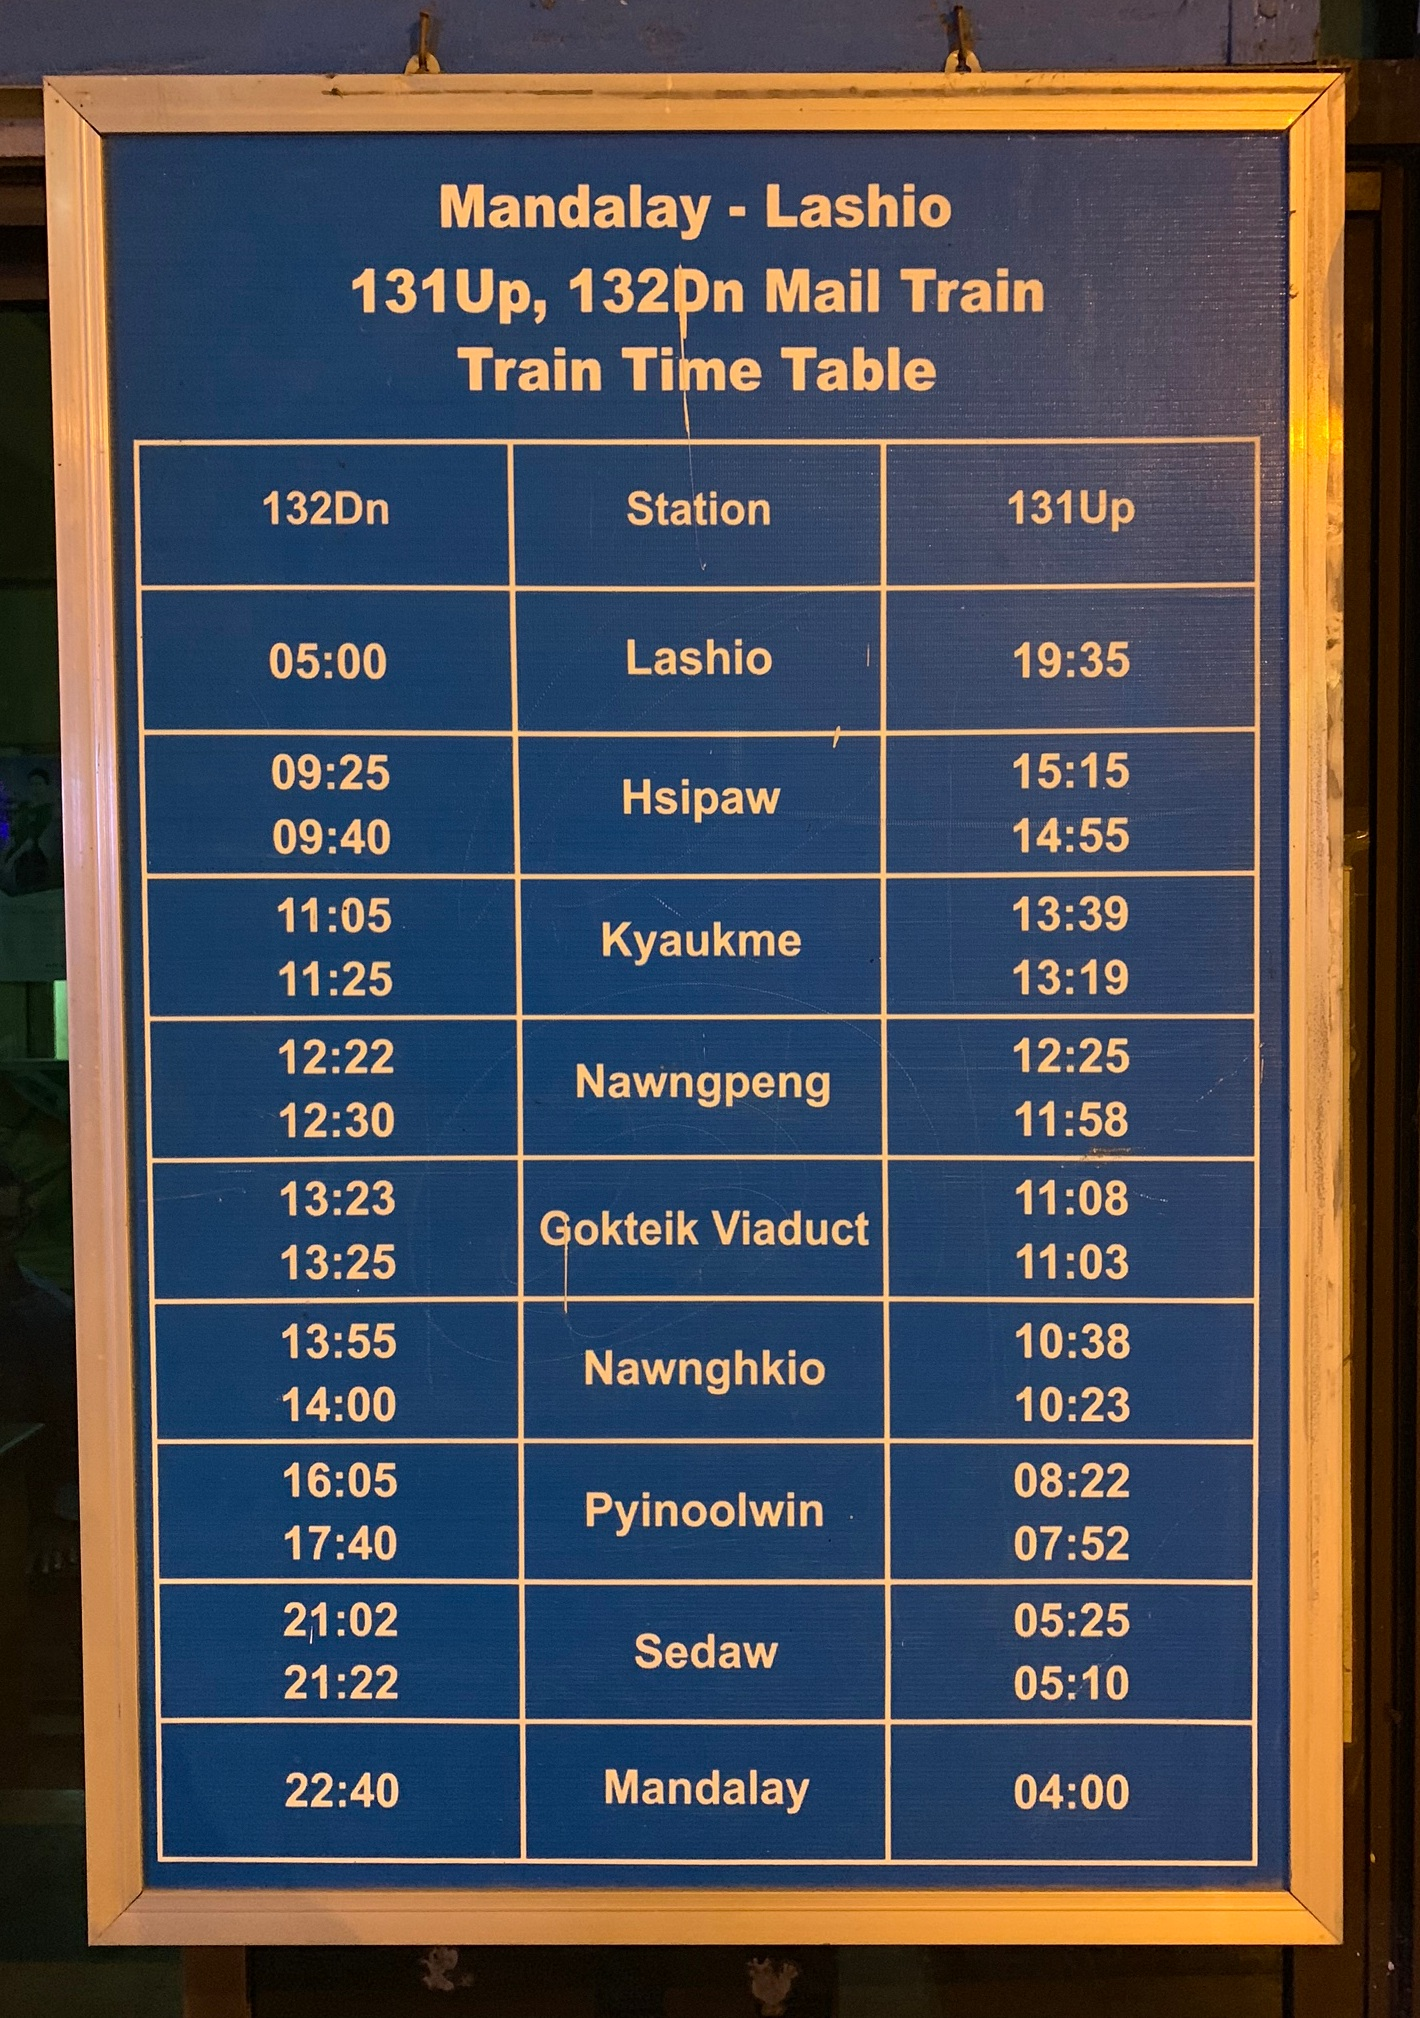 Mandalay-Lashio train timetable as shown on a board in the Mandalay Railway Station.